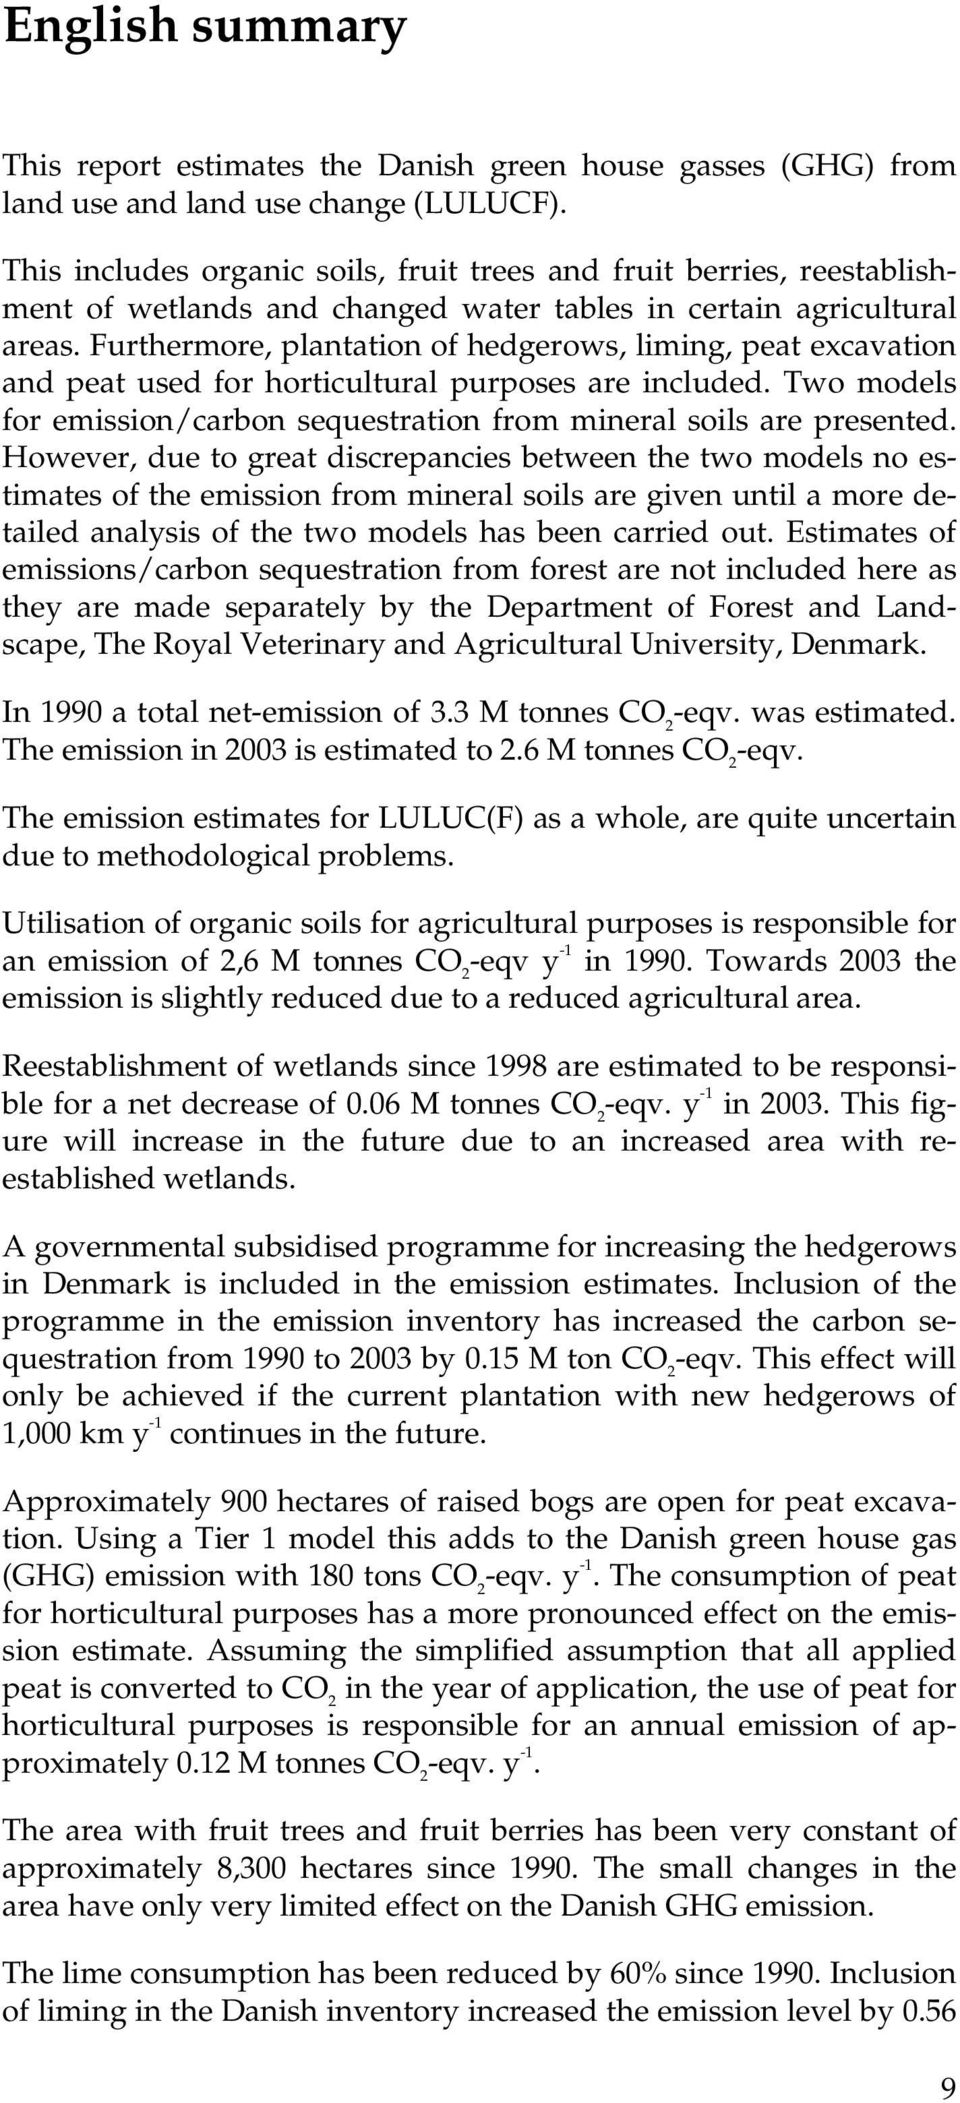 Furthermore, plantation of hedgerows, liming, peat excavation and peat used for horticultural purposes are included. Two models for emission/carbon sequestration from mineral soils are presented.